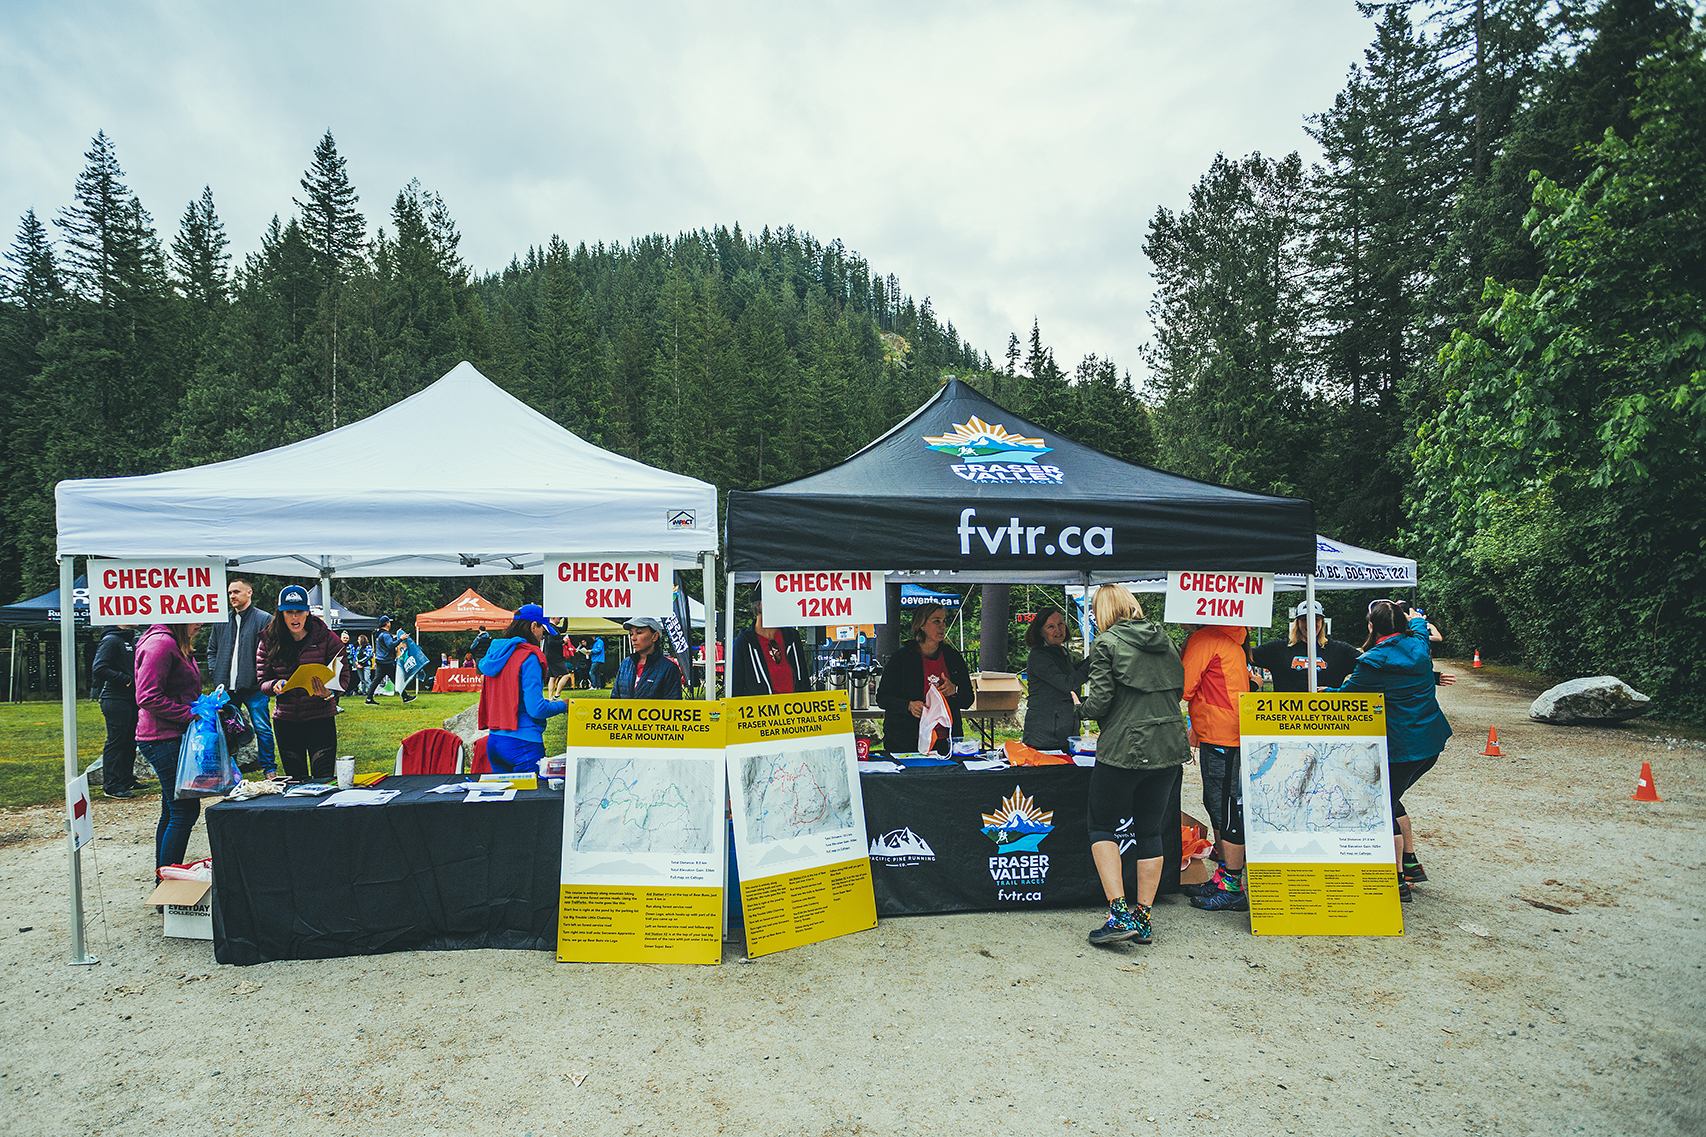 Fraser Valley Trail Races - Bear Mountain - IMG_2306 by Brice Ferre Studio - Vancouver Portrait Adventure and Athlete Photographer.jpg